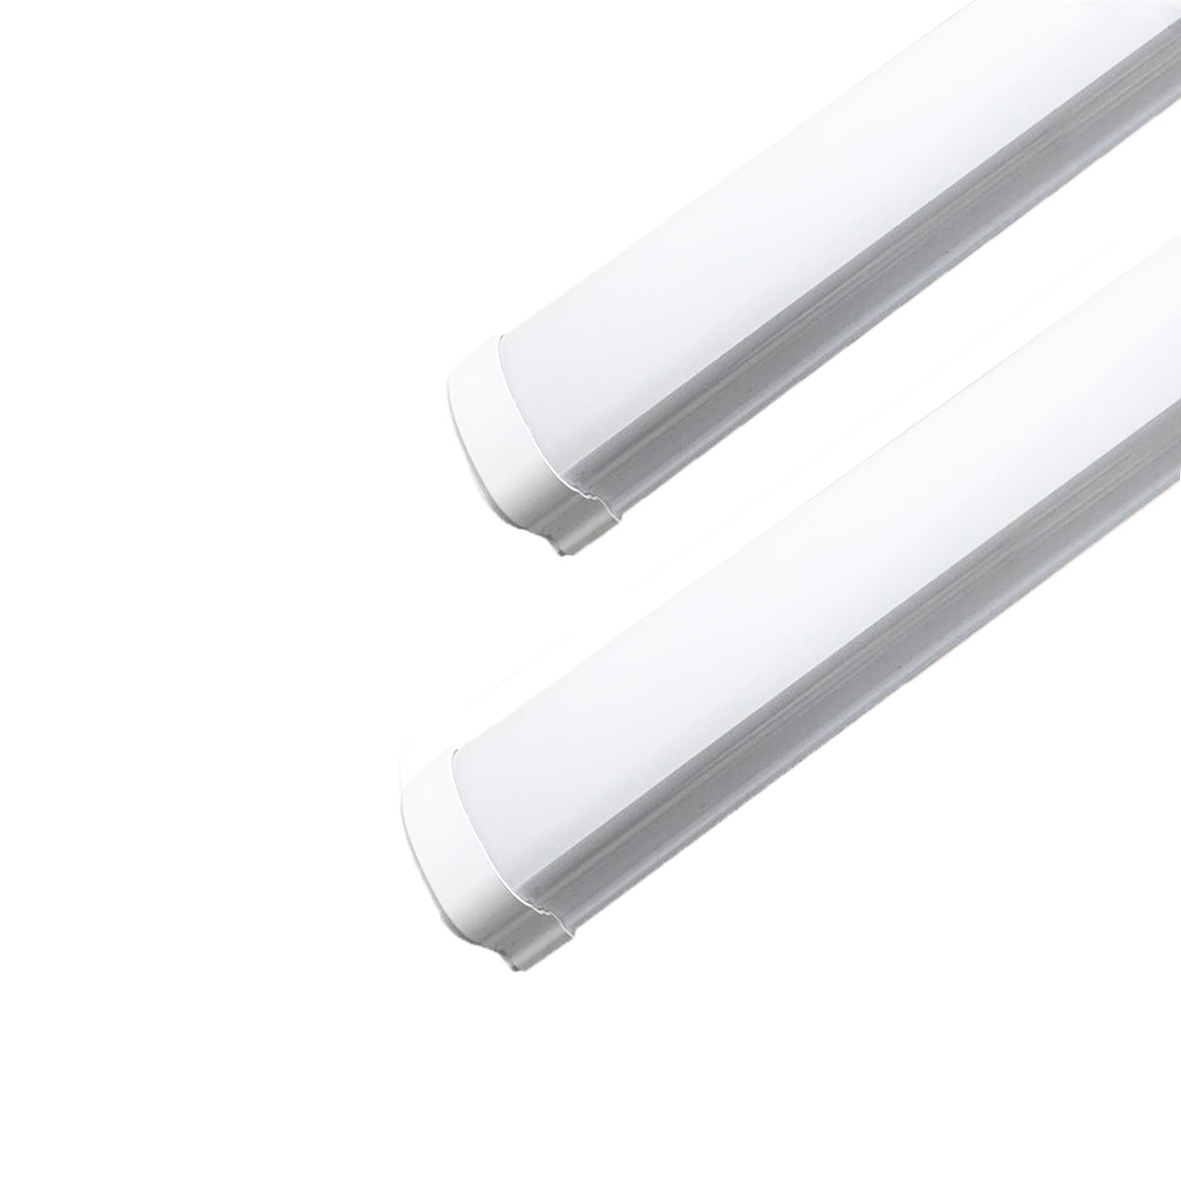 Plafoniera LED 150cm 50w 220v bordo Bianco alto IP65 P50-50w